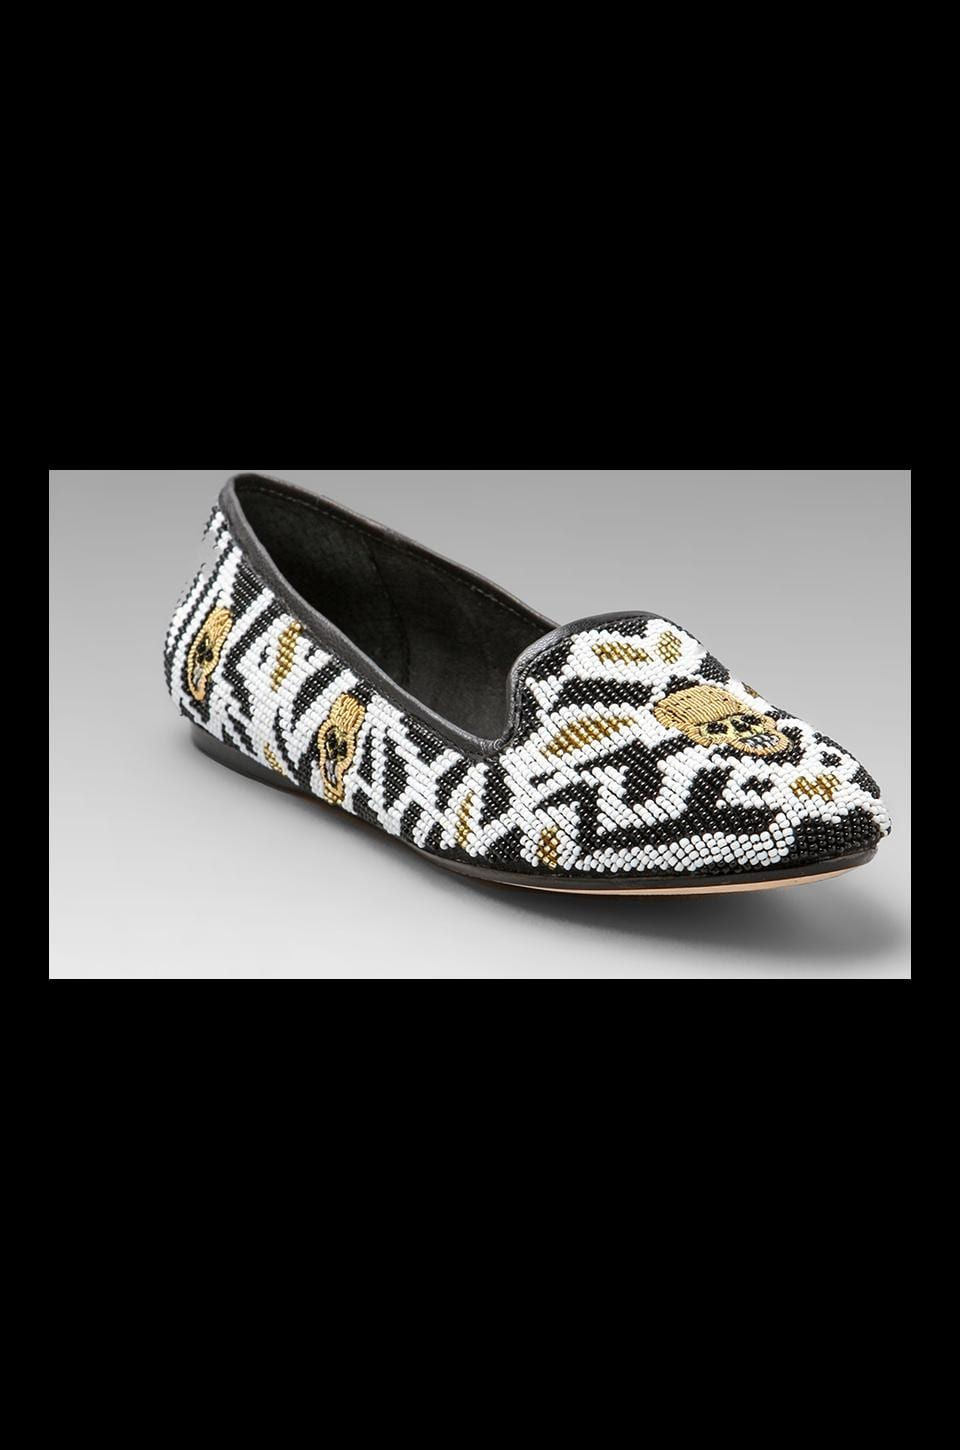 House of Harlow 1960 House of Harlow Zenith Beaded Flat in Black/White